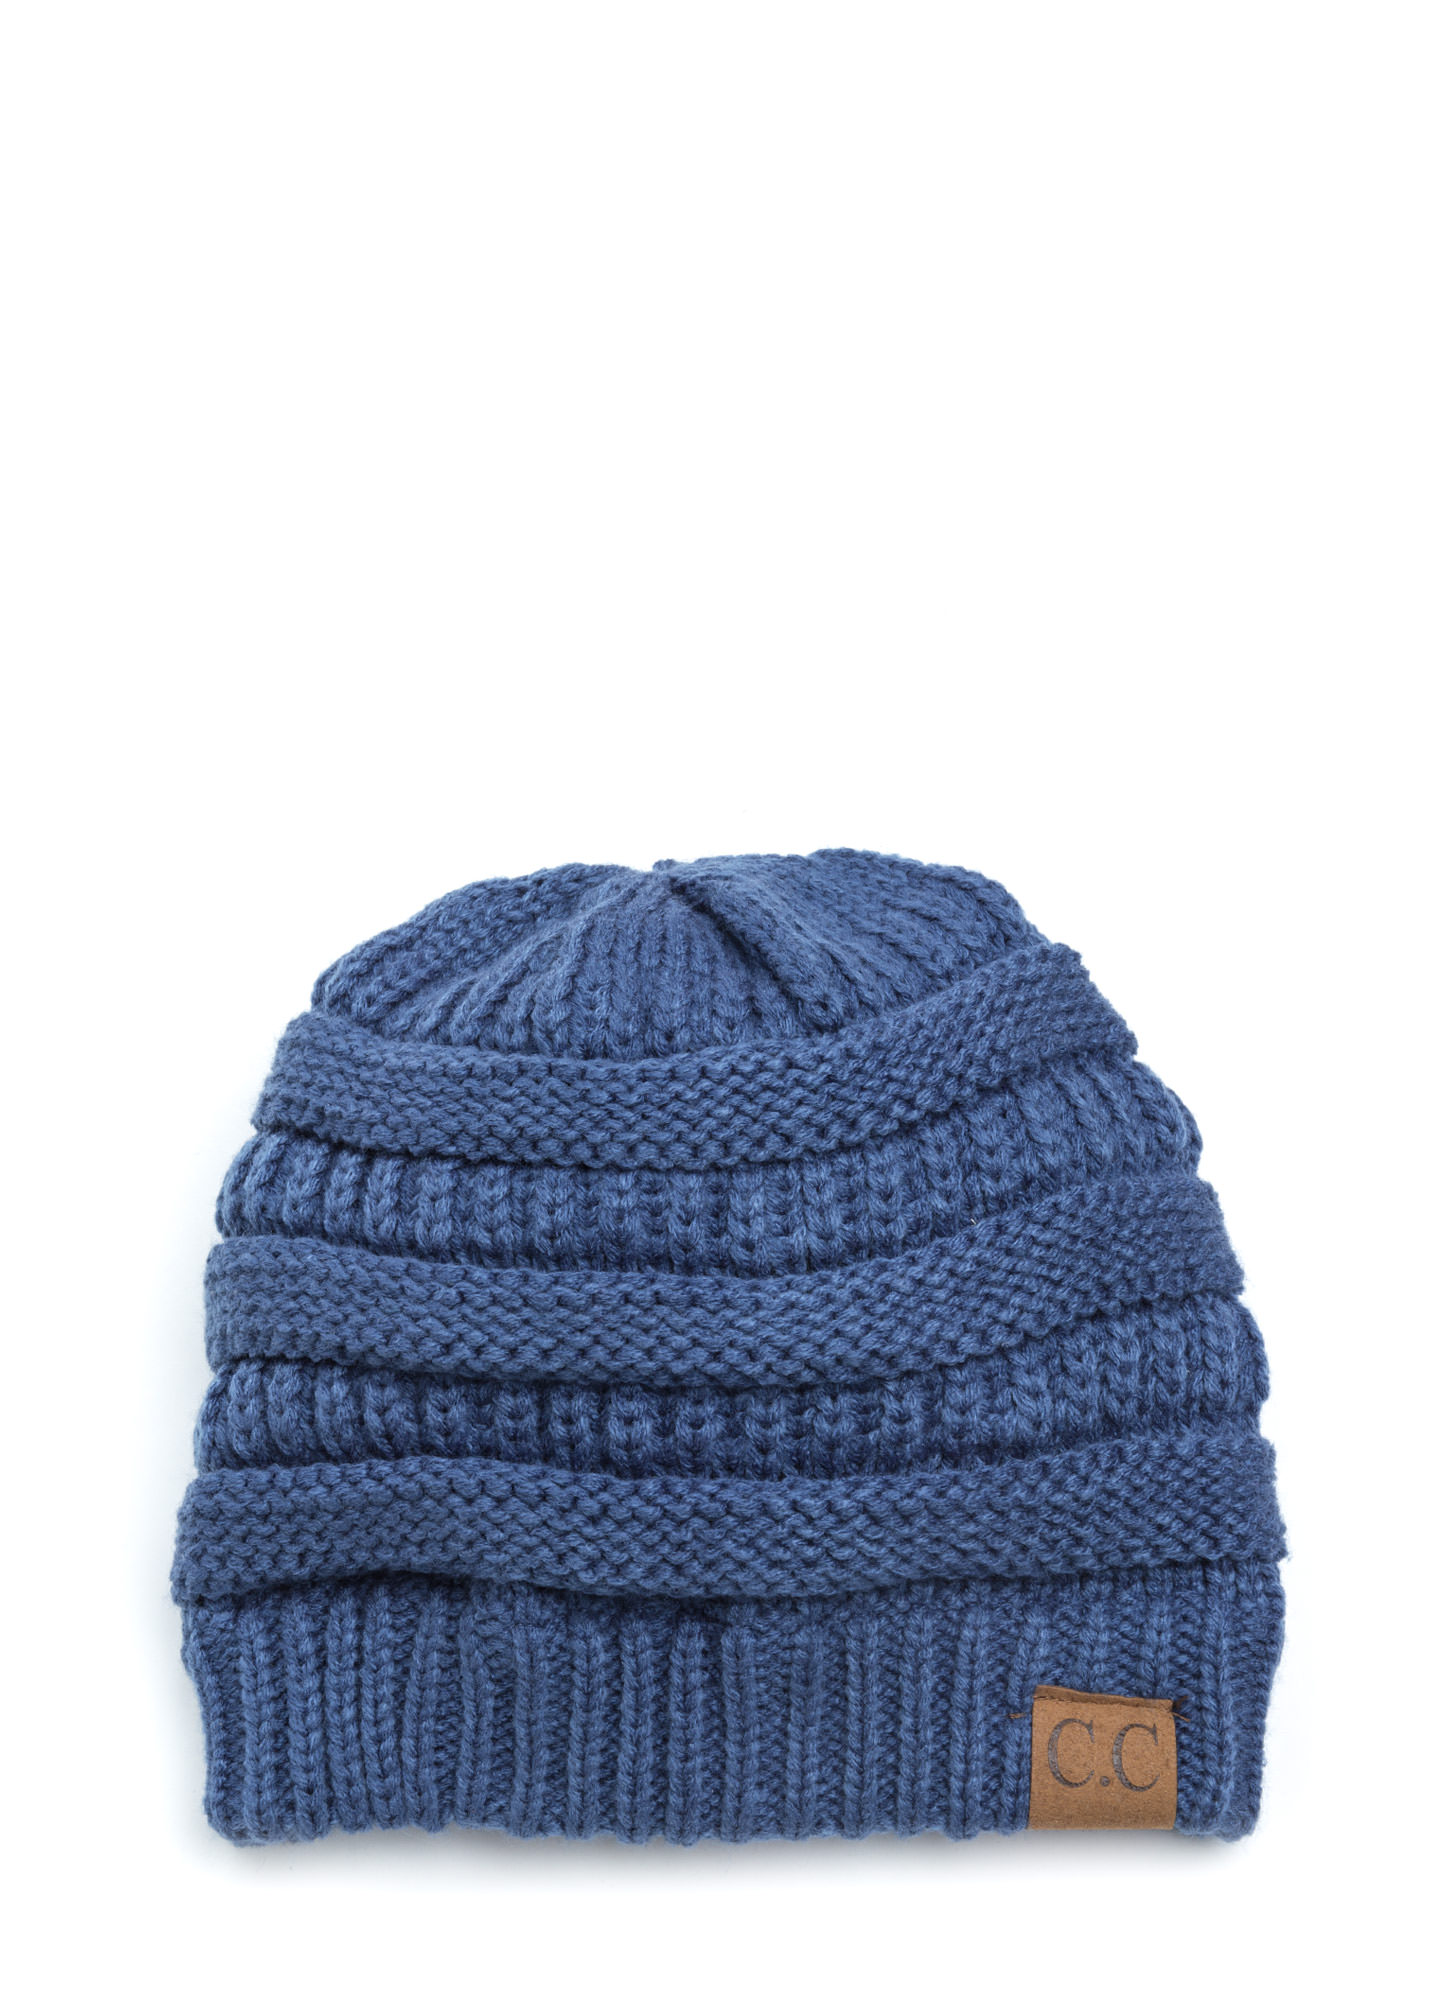 CC Cable Kit Beanie BLUE